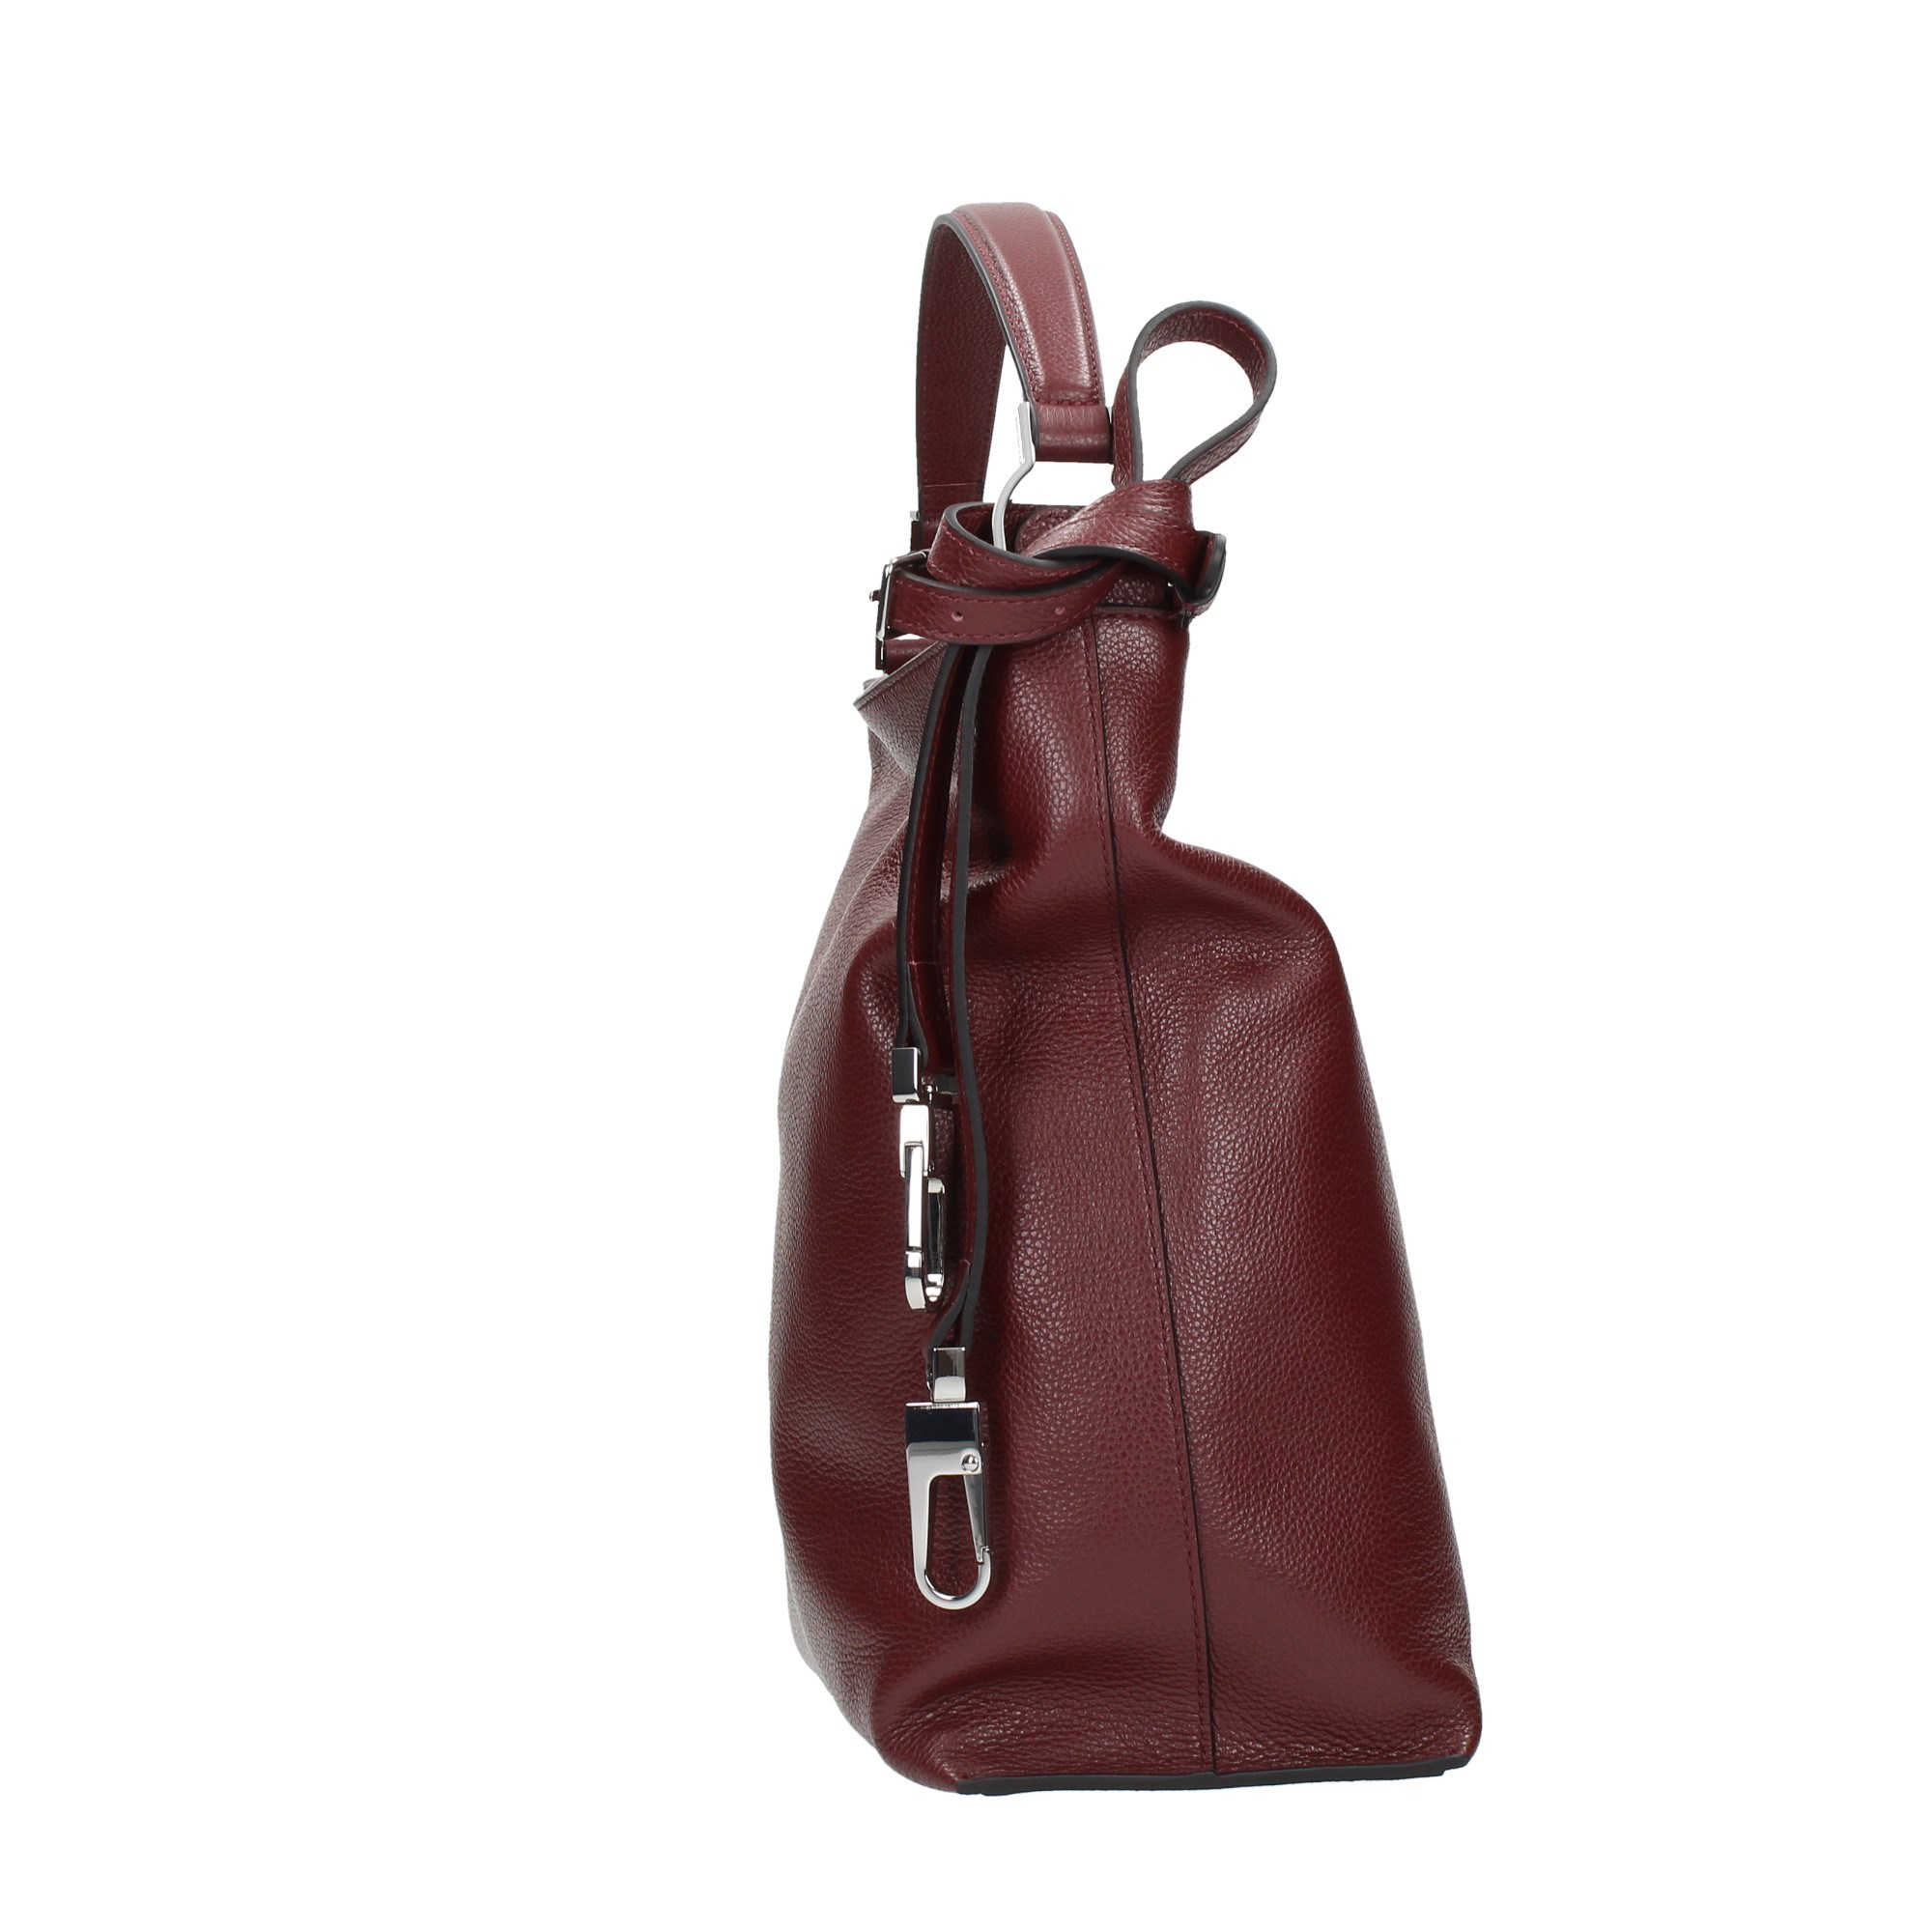 Coccinelle Accessories Women Shoulder Bags Bordeaux GI0 130201